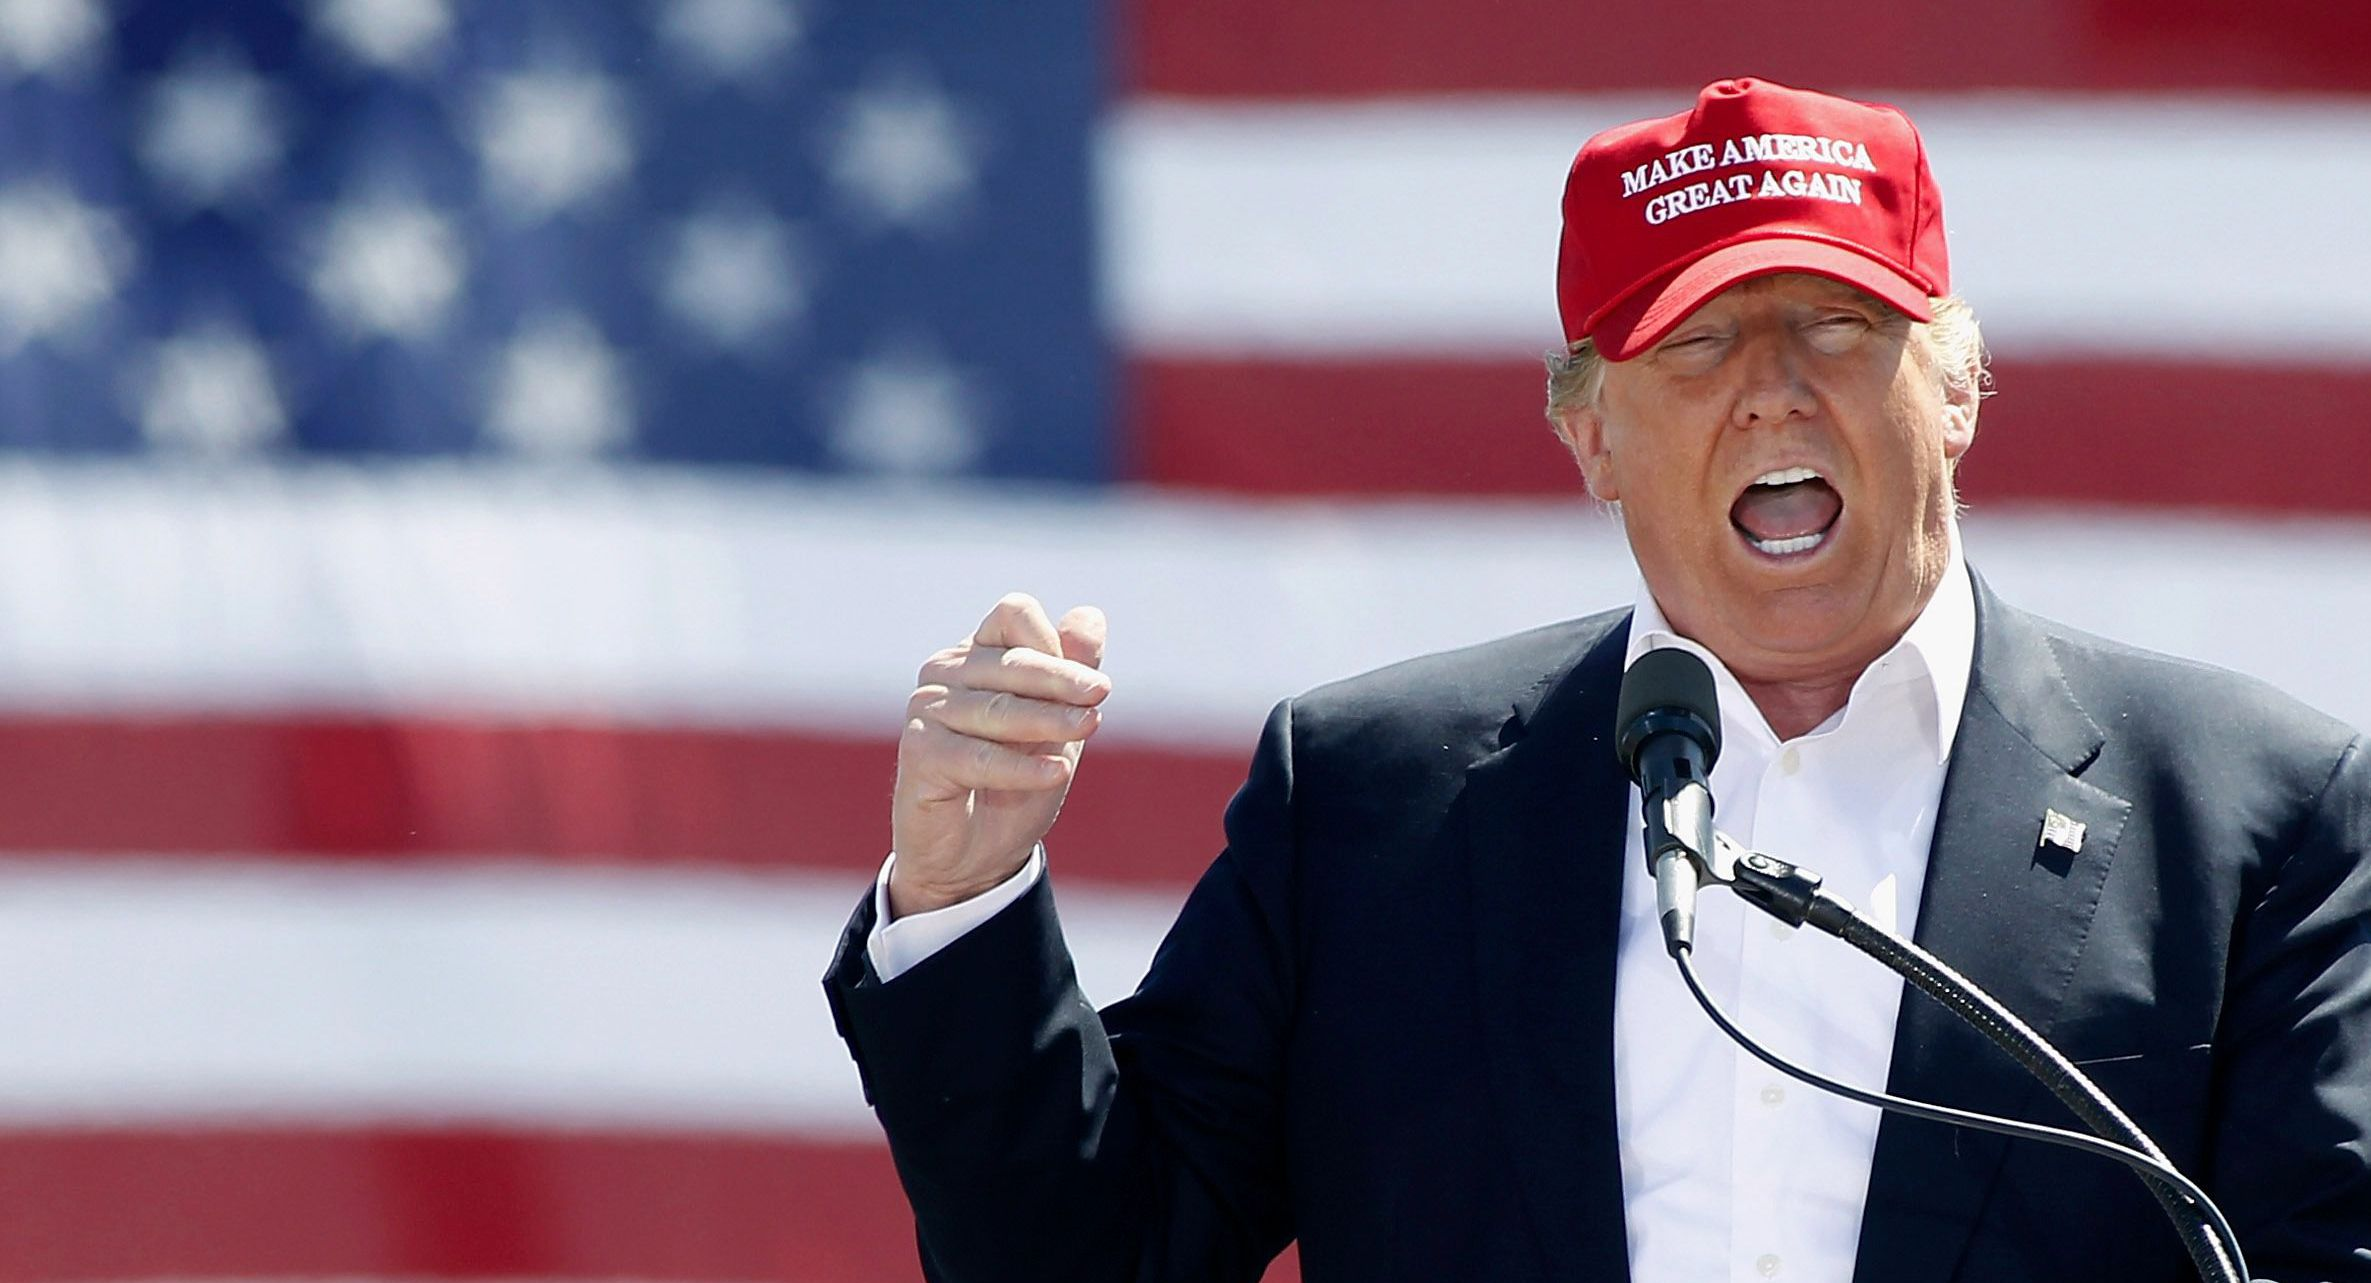 Donald Trump speaking at a rally during his presidential campaign.